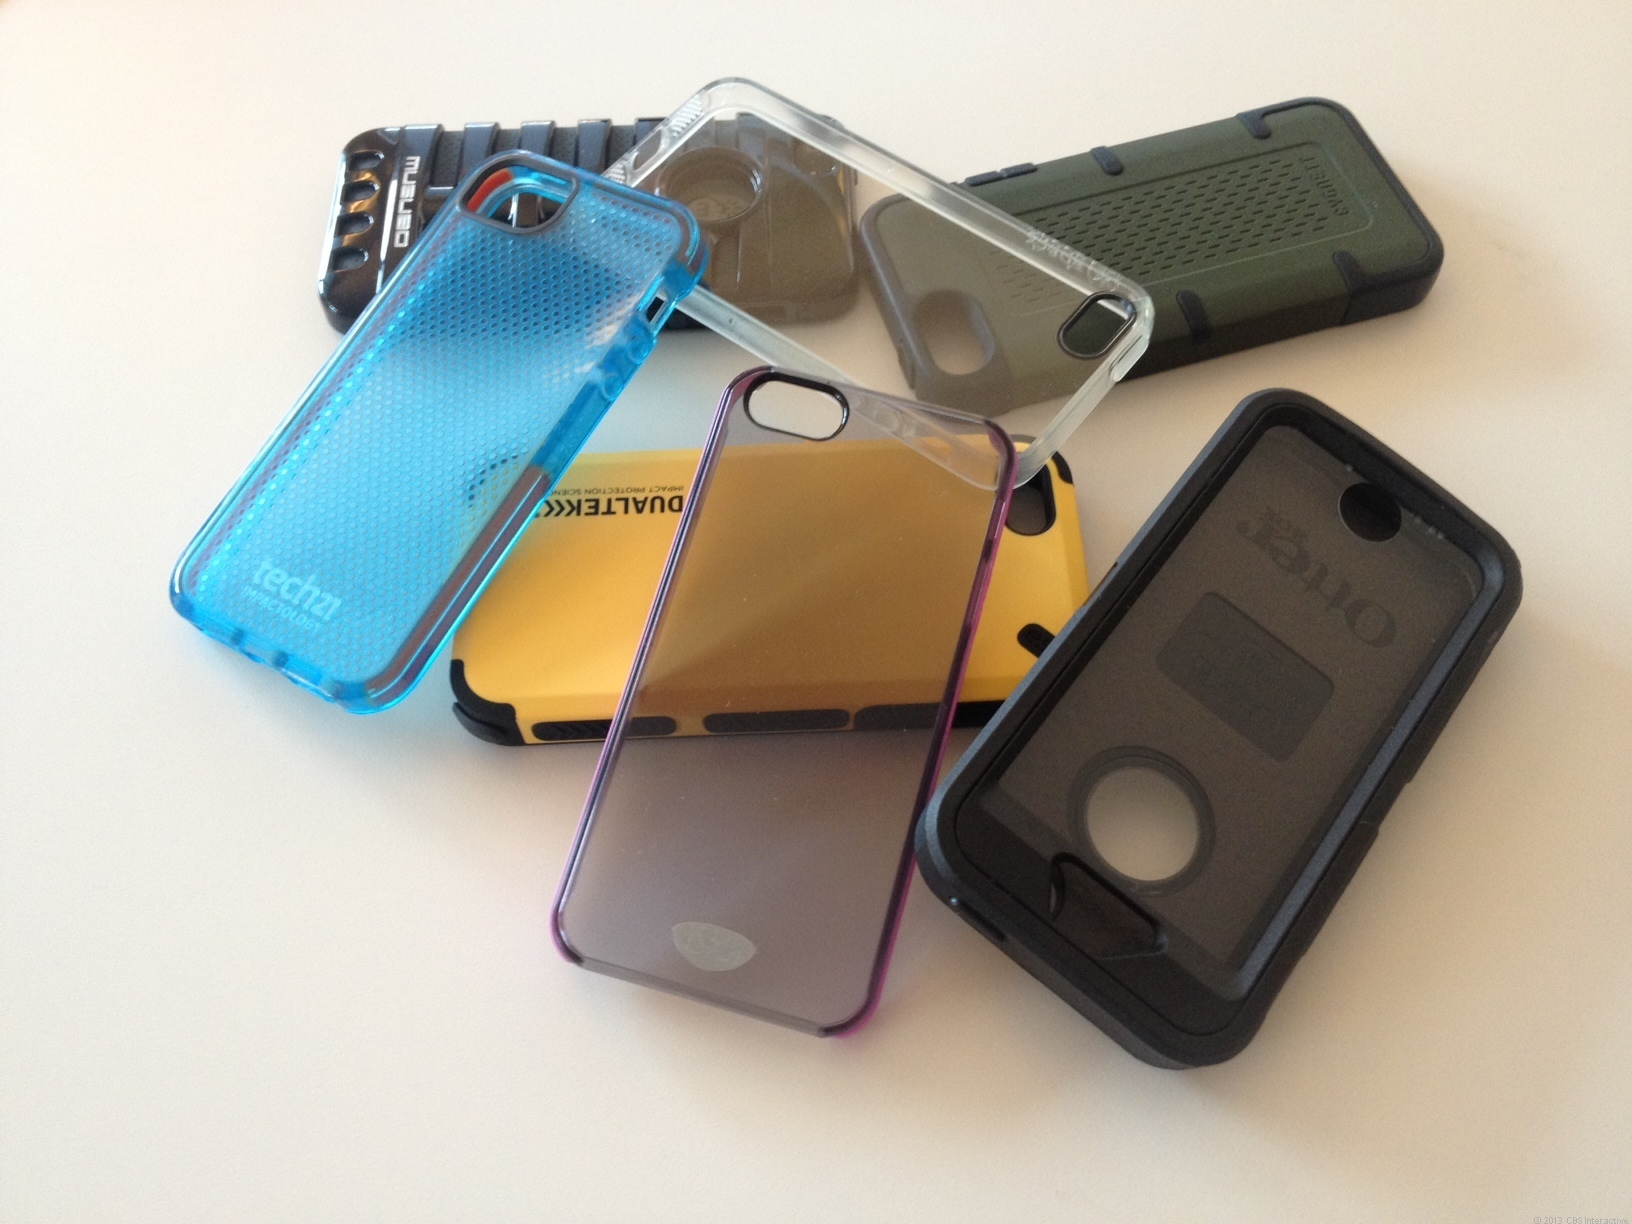 iPhone 5/5S cases galore